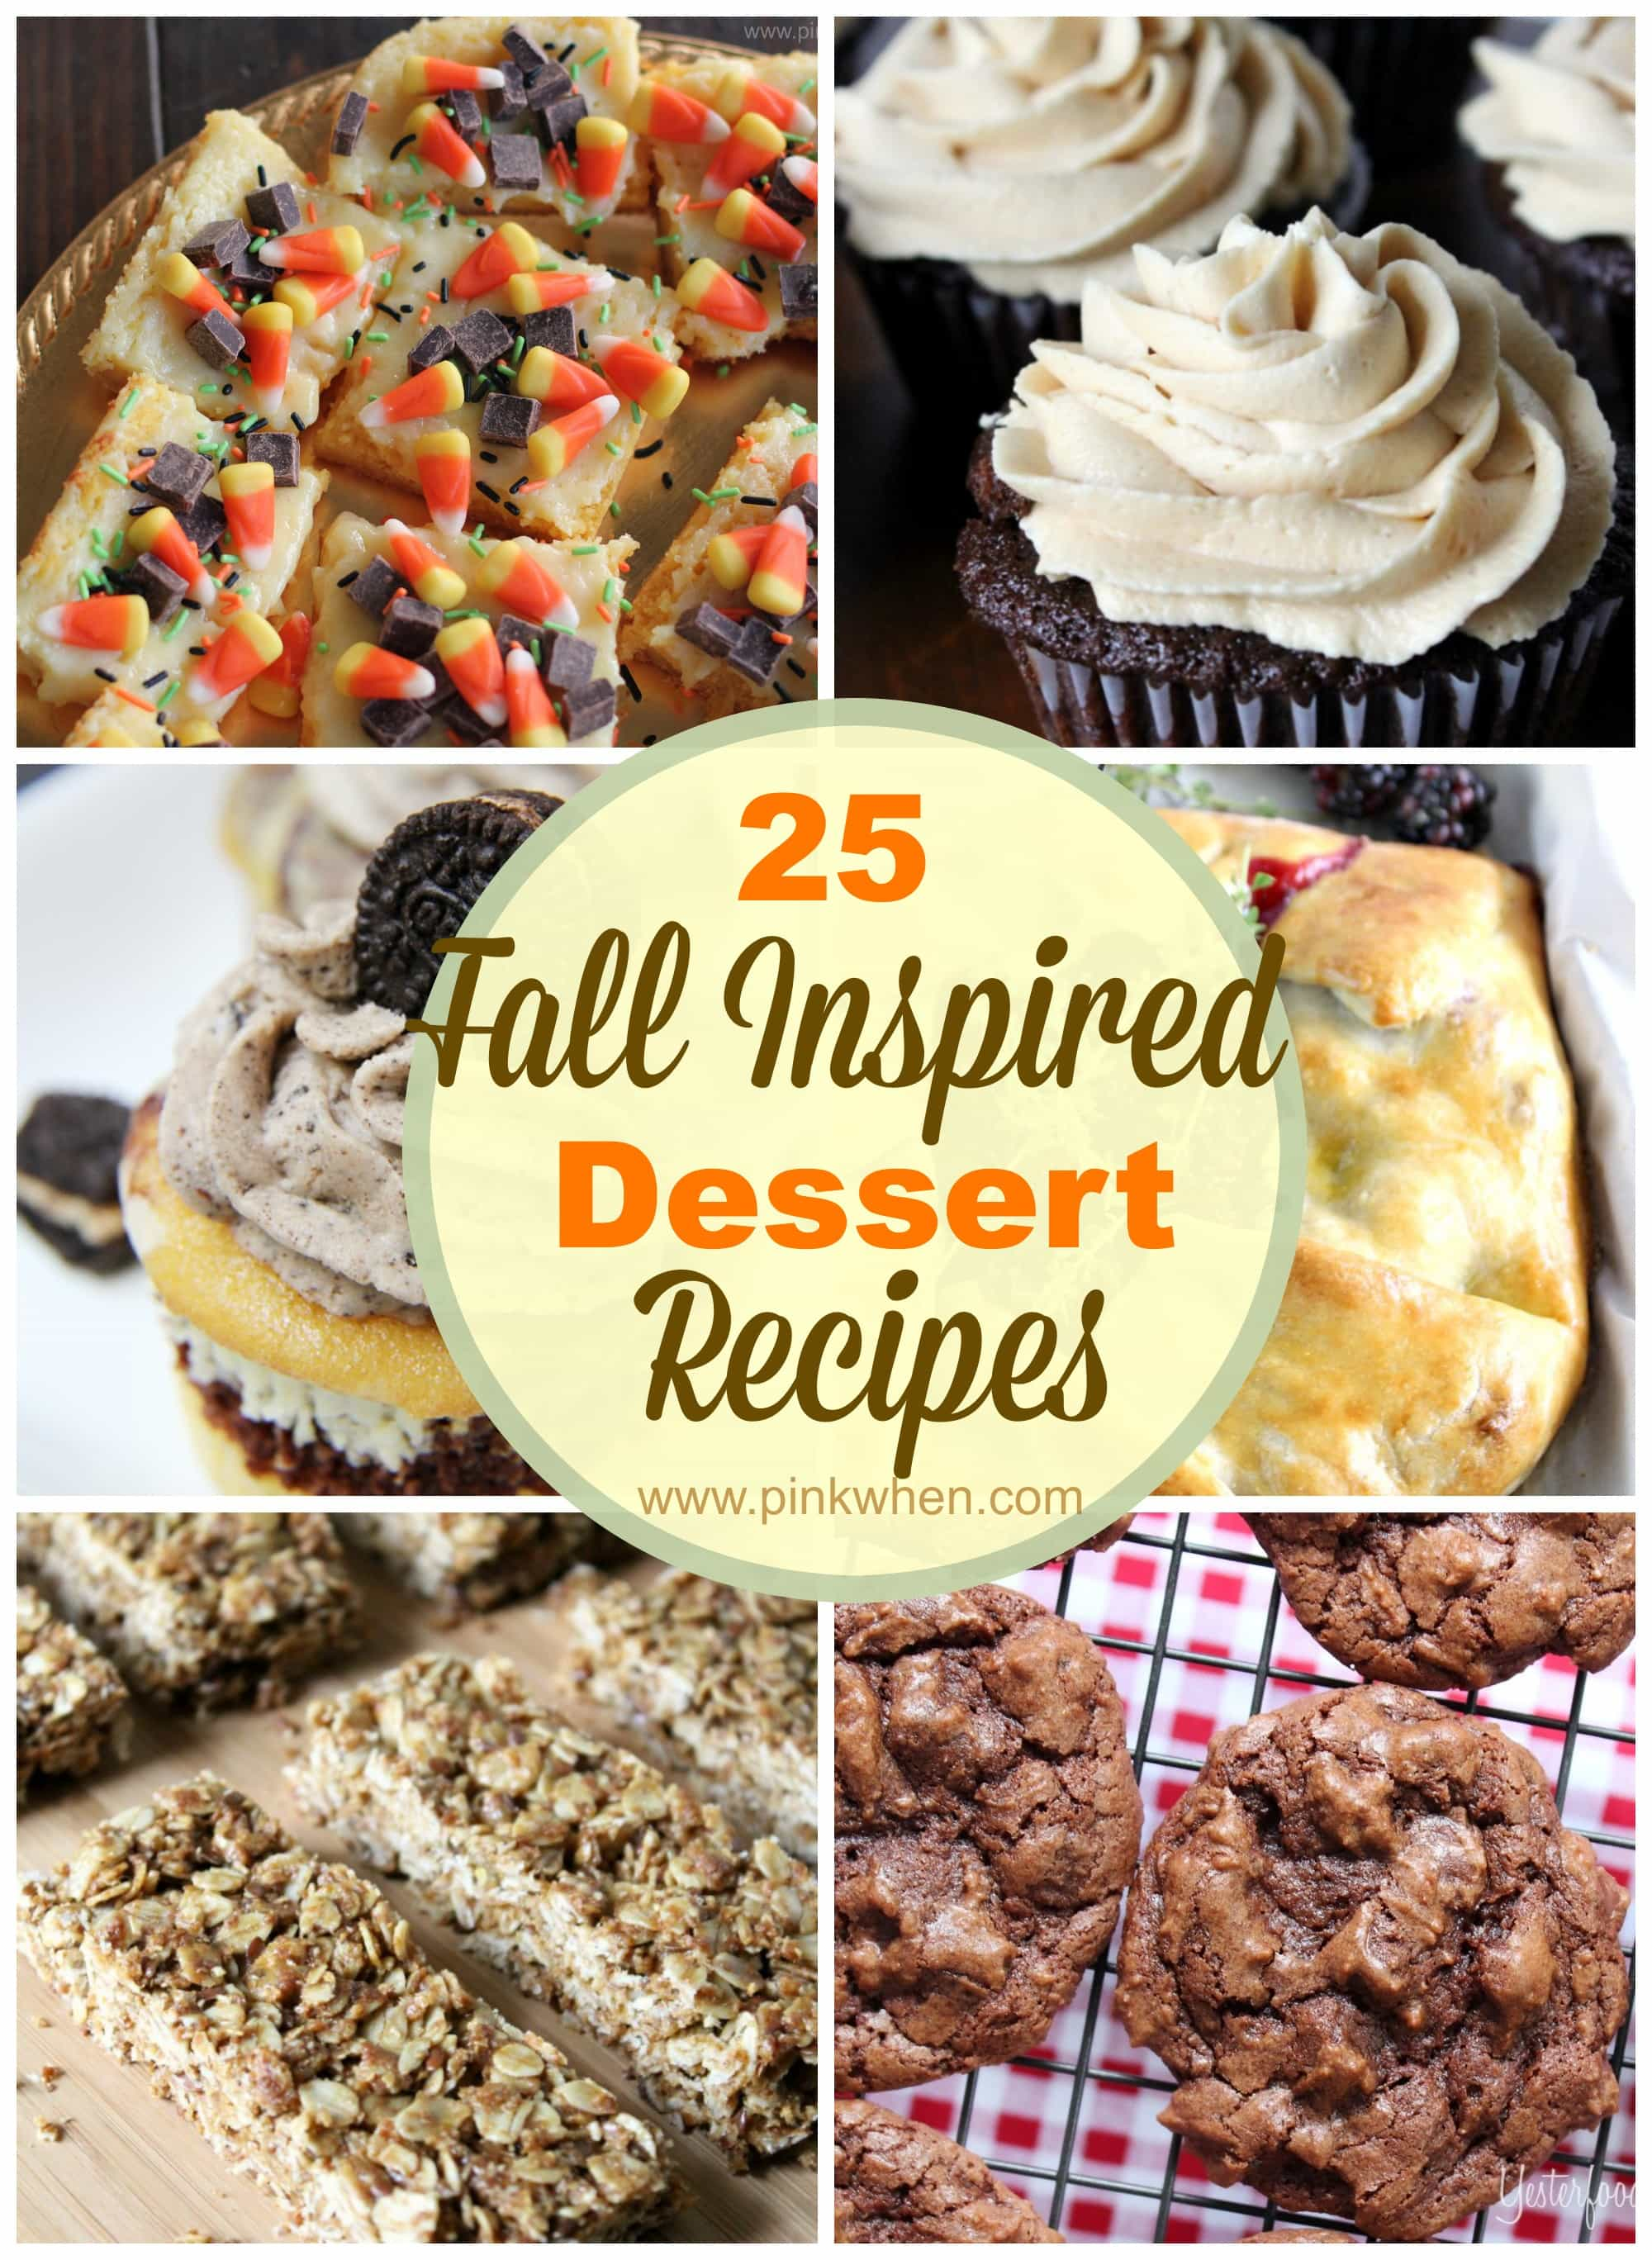 25 Fall Inspired Dessert Recipes via PinkWhen.com